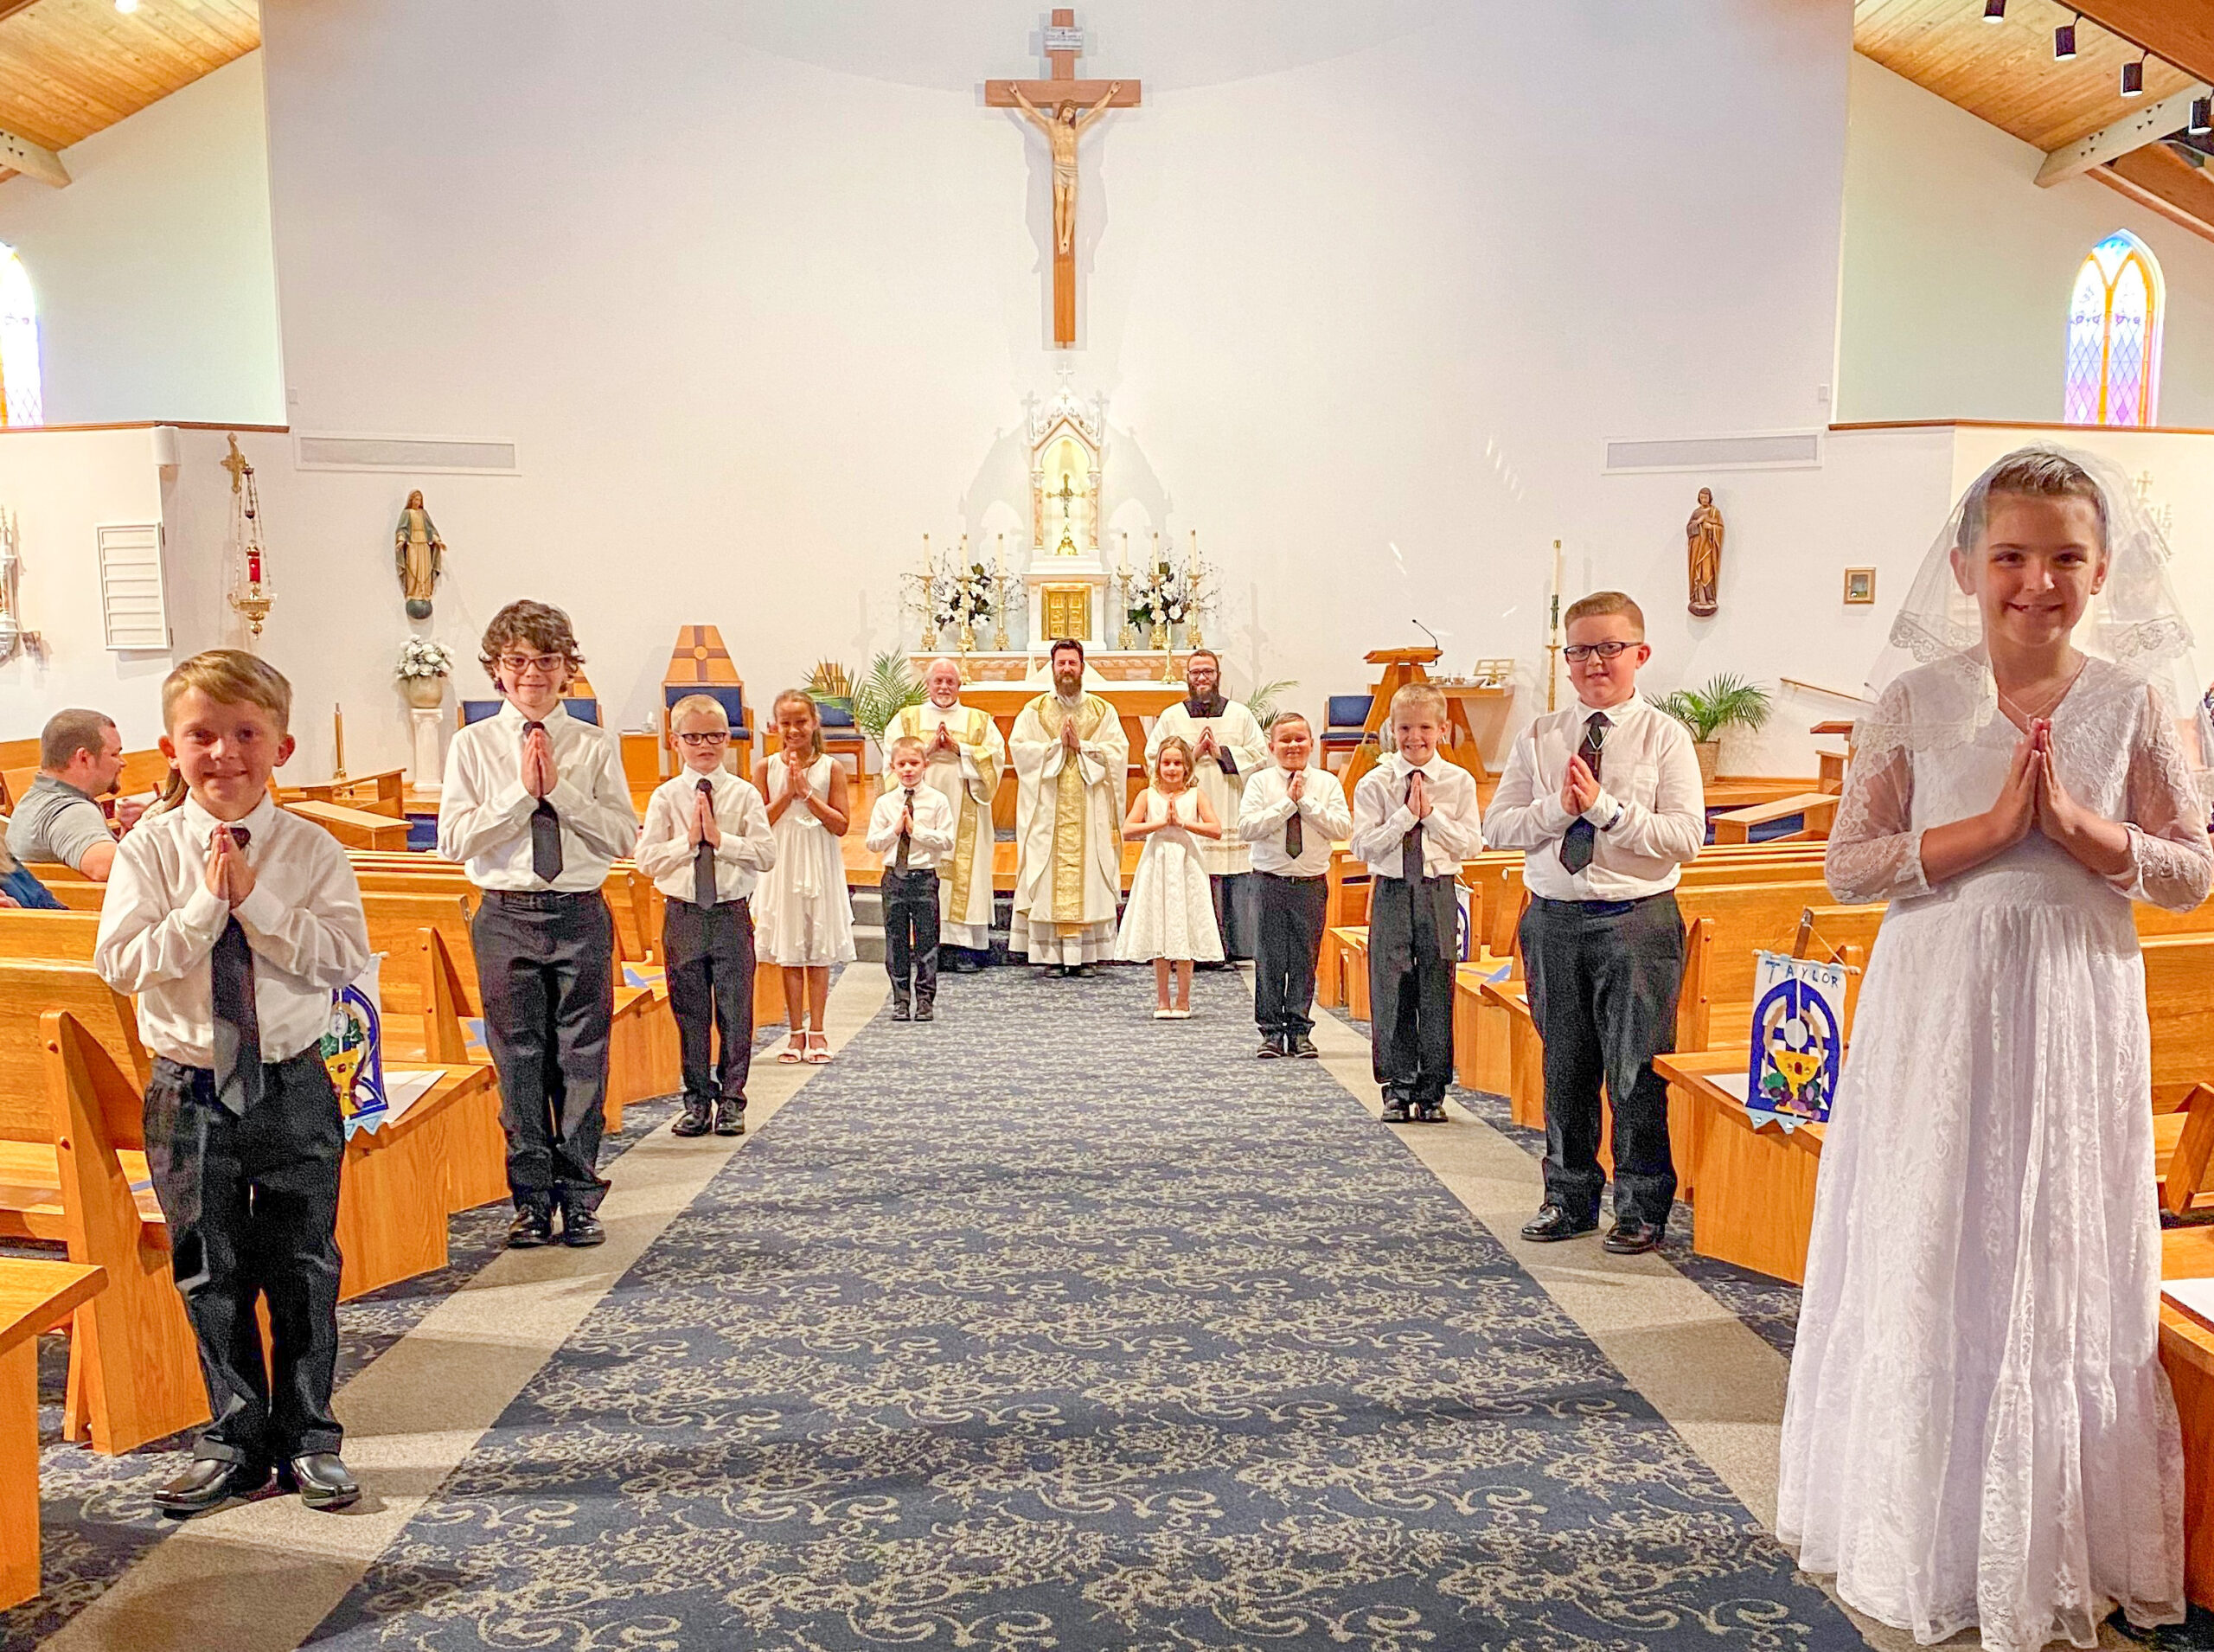 St. John the Evangelist Parish in Daylight celebrated First Communion on June 14 with social distancing – even during the group photo! Pictured are First Communicants Jase Young, left, Leo Van Hoy, Wyatt Mueth, Ava Kinder, Mason Gist, Lilly Crichfield, Jake Jenkins, Patrick Leslie, Taylor Rogge and Elizabeth Young. Standing in back are Deacon Richard Leibundguth, left, St. John the Evangelist Pastor Father Chris Forler and seminarian Caleb Scherzinger. Submitted photo courtesy of St. John the Evangelist Parish, Daylight